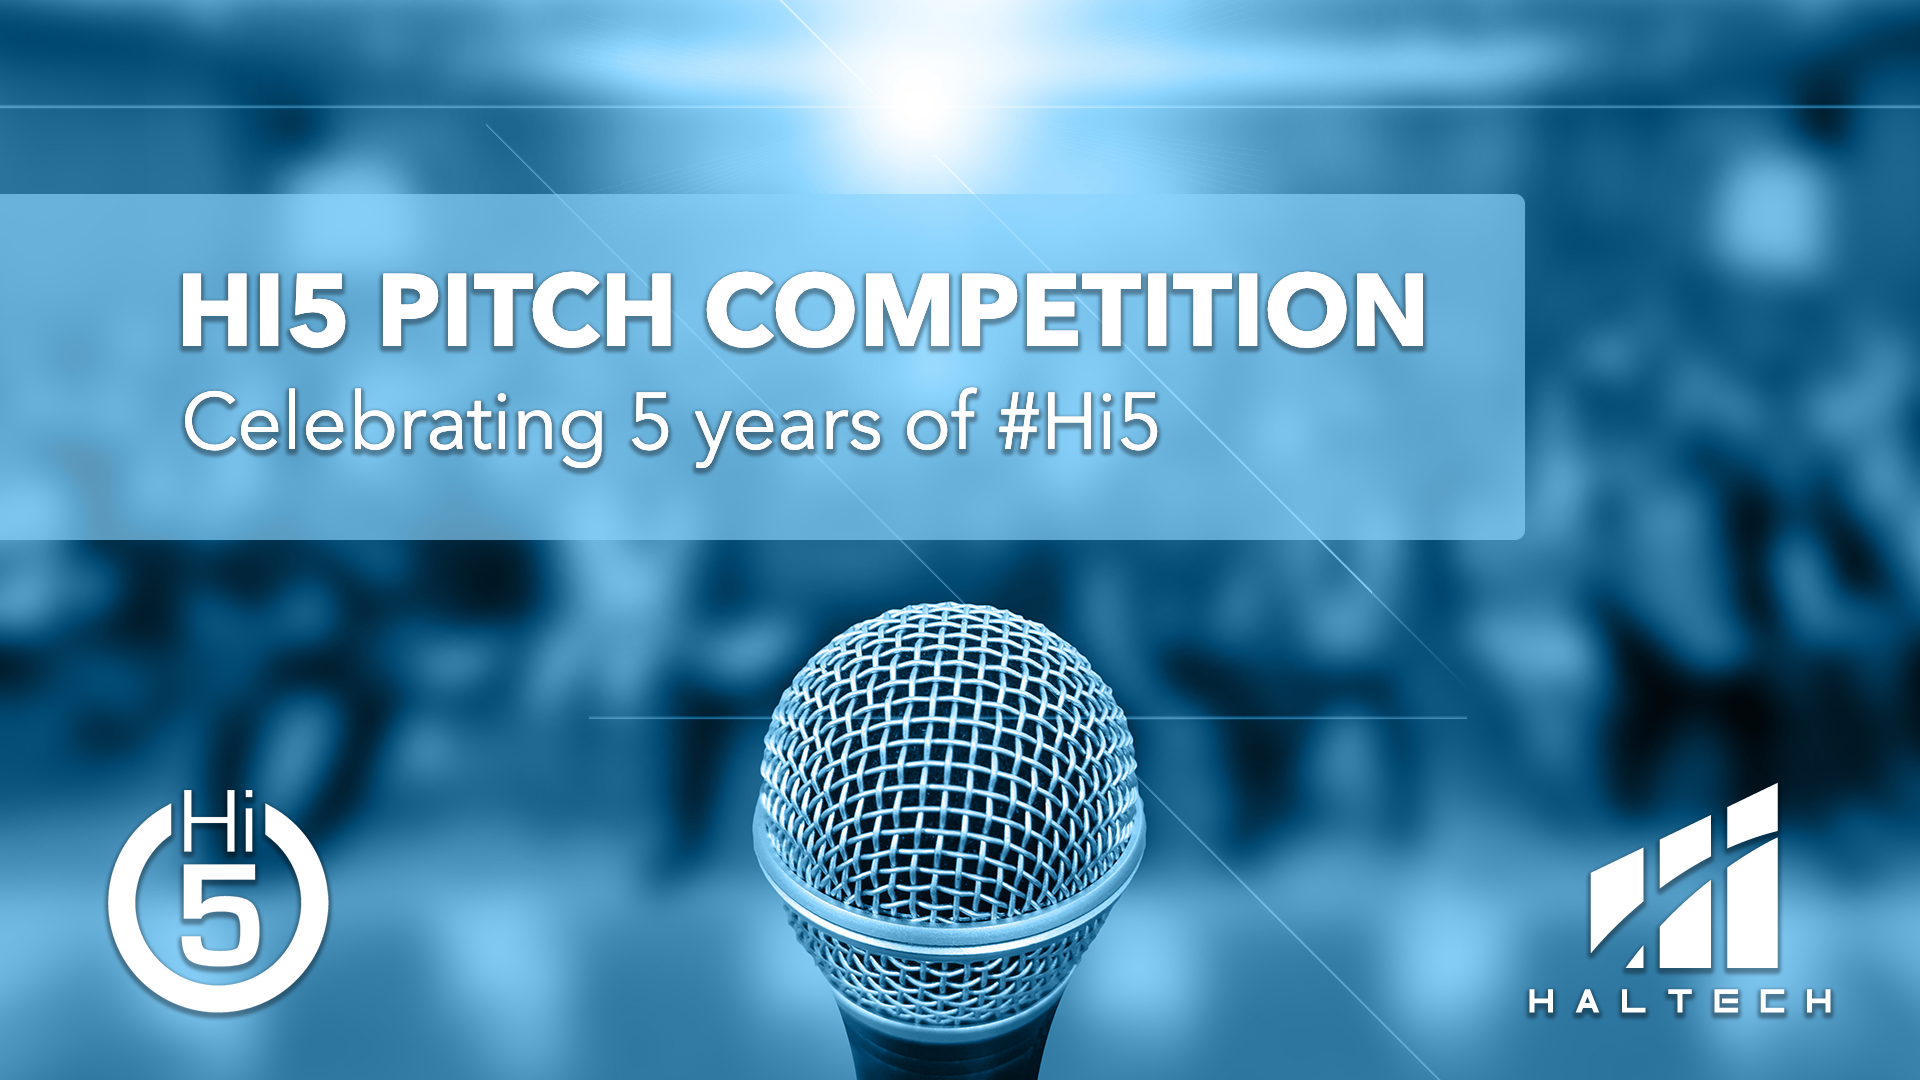 Graphic showing Hi5 Pitch Competition text overlaid onto image of microphone on stage